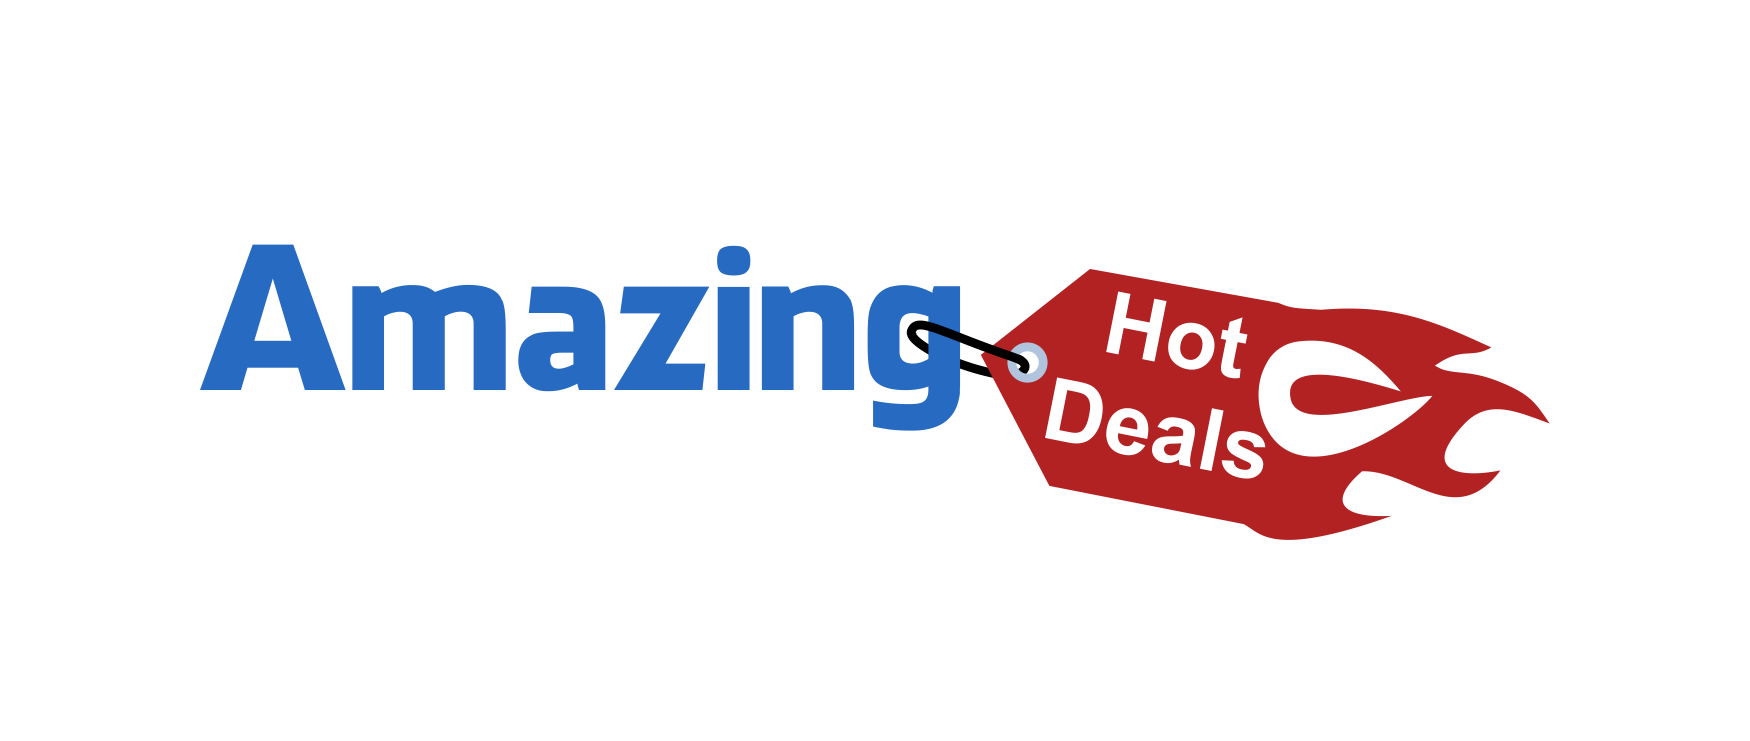 Amazing Hot Dealz